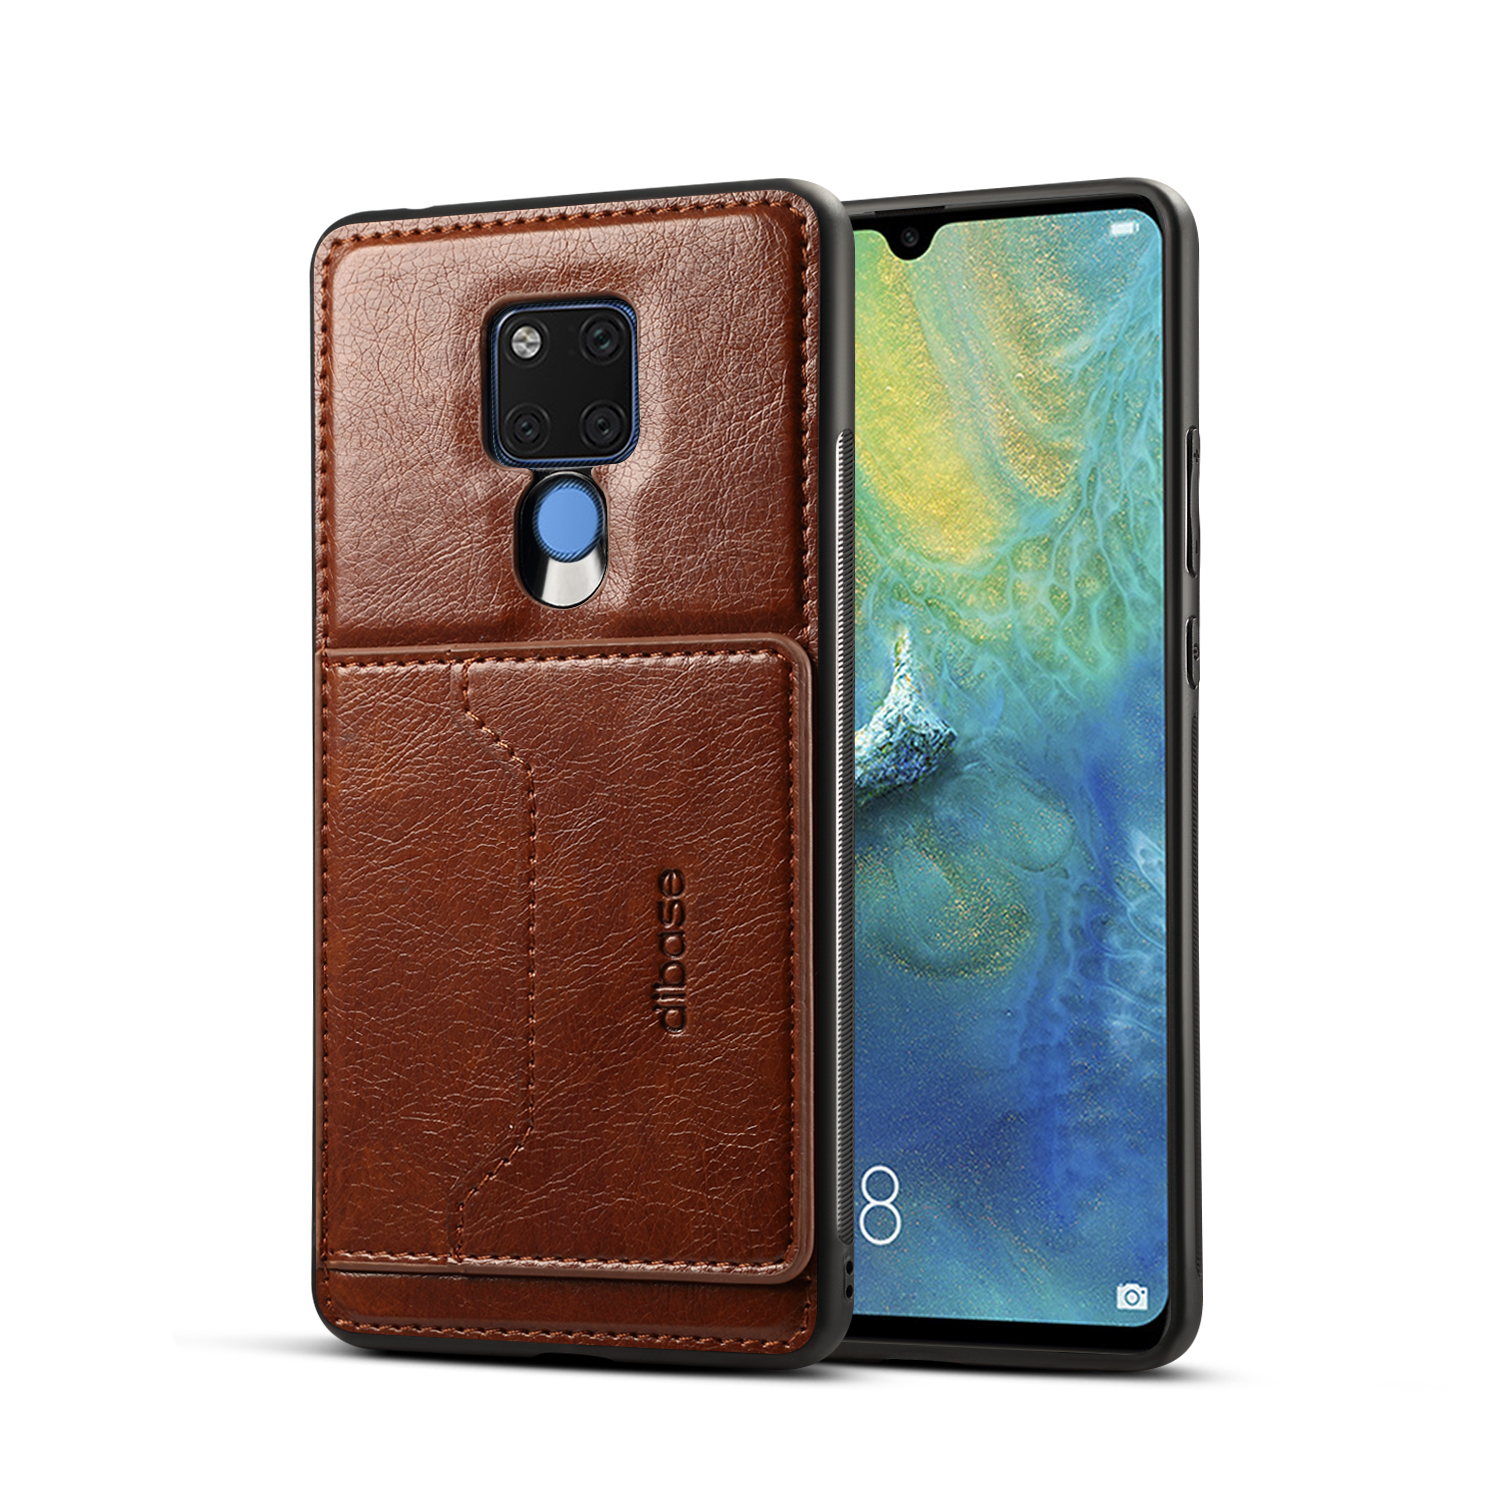 For HUAWEI MATE 20X 2 in 1 Retro PU Leather Wallet Stand Non-slip Shockproof Cell Phone Case coffee